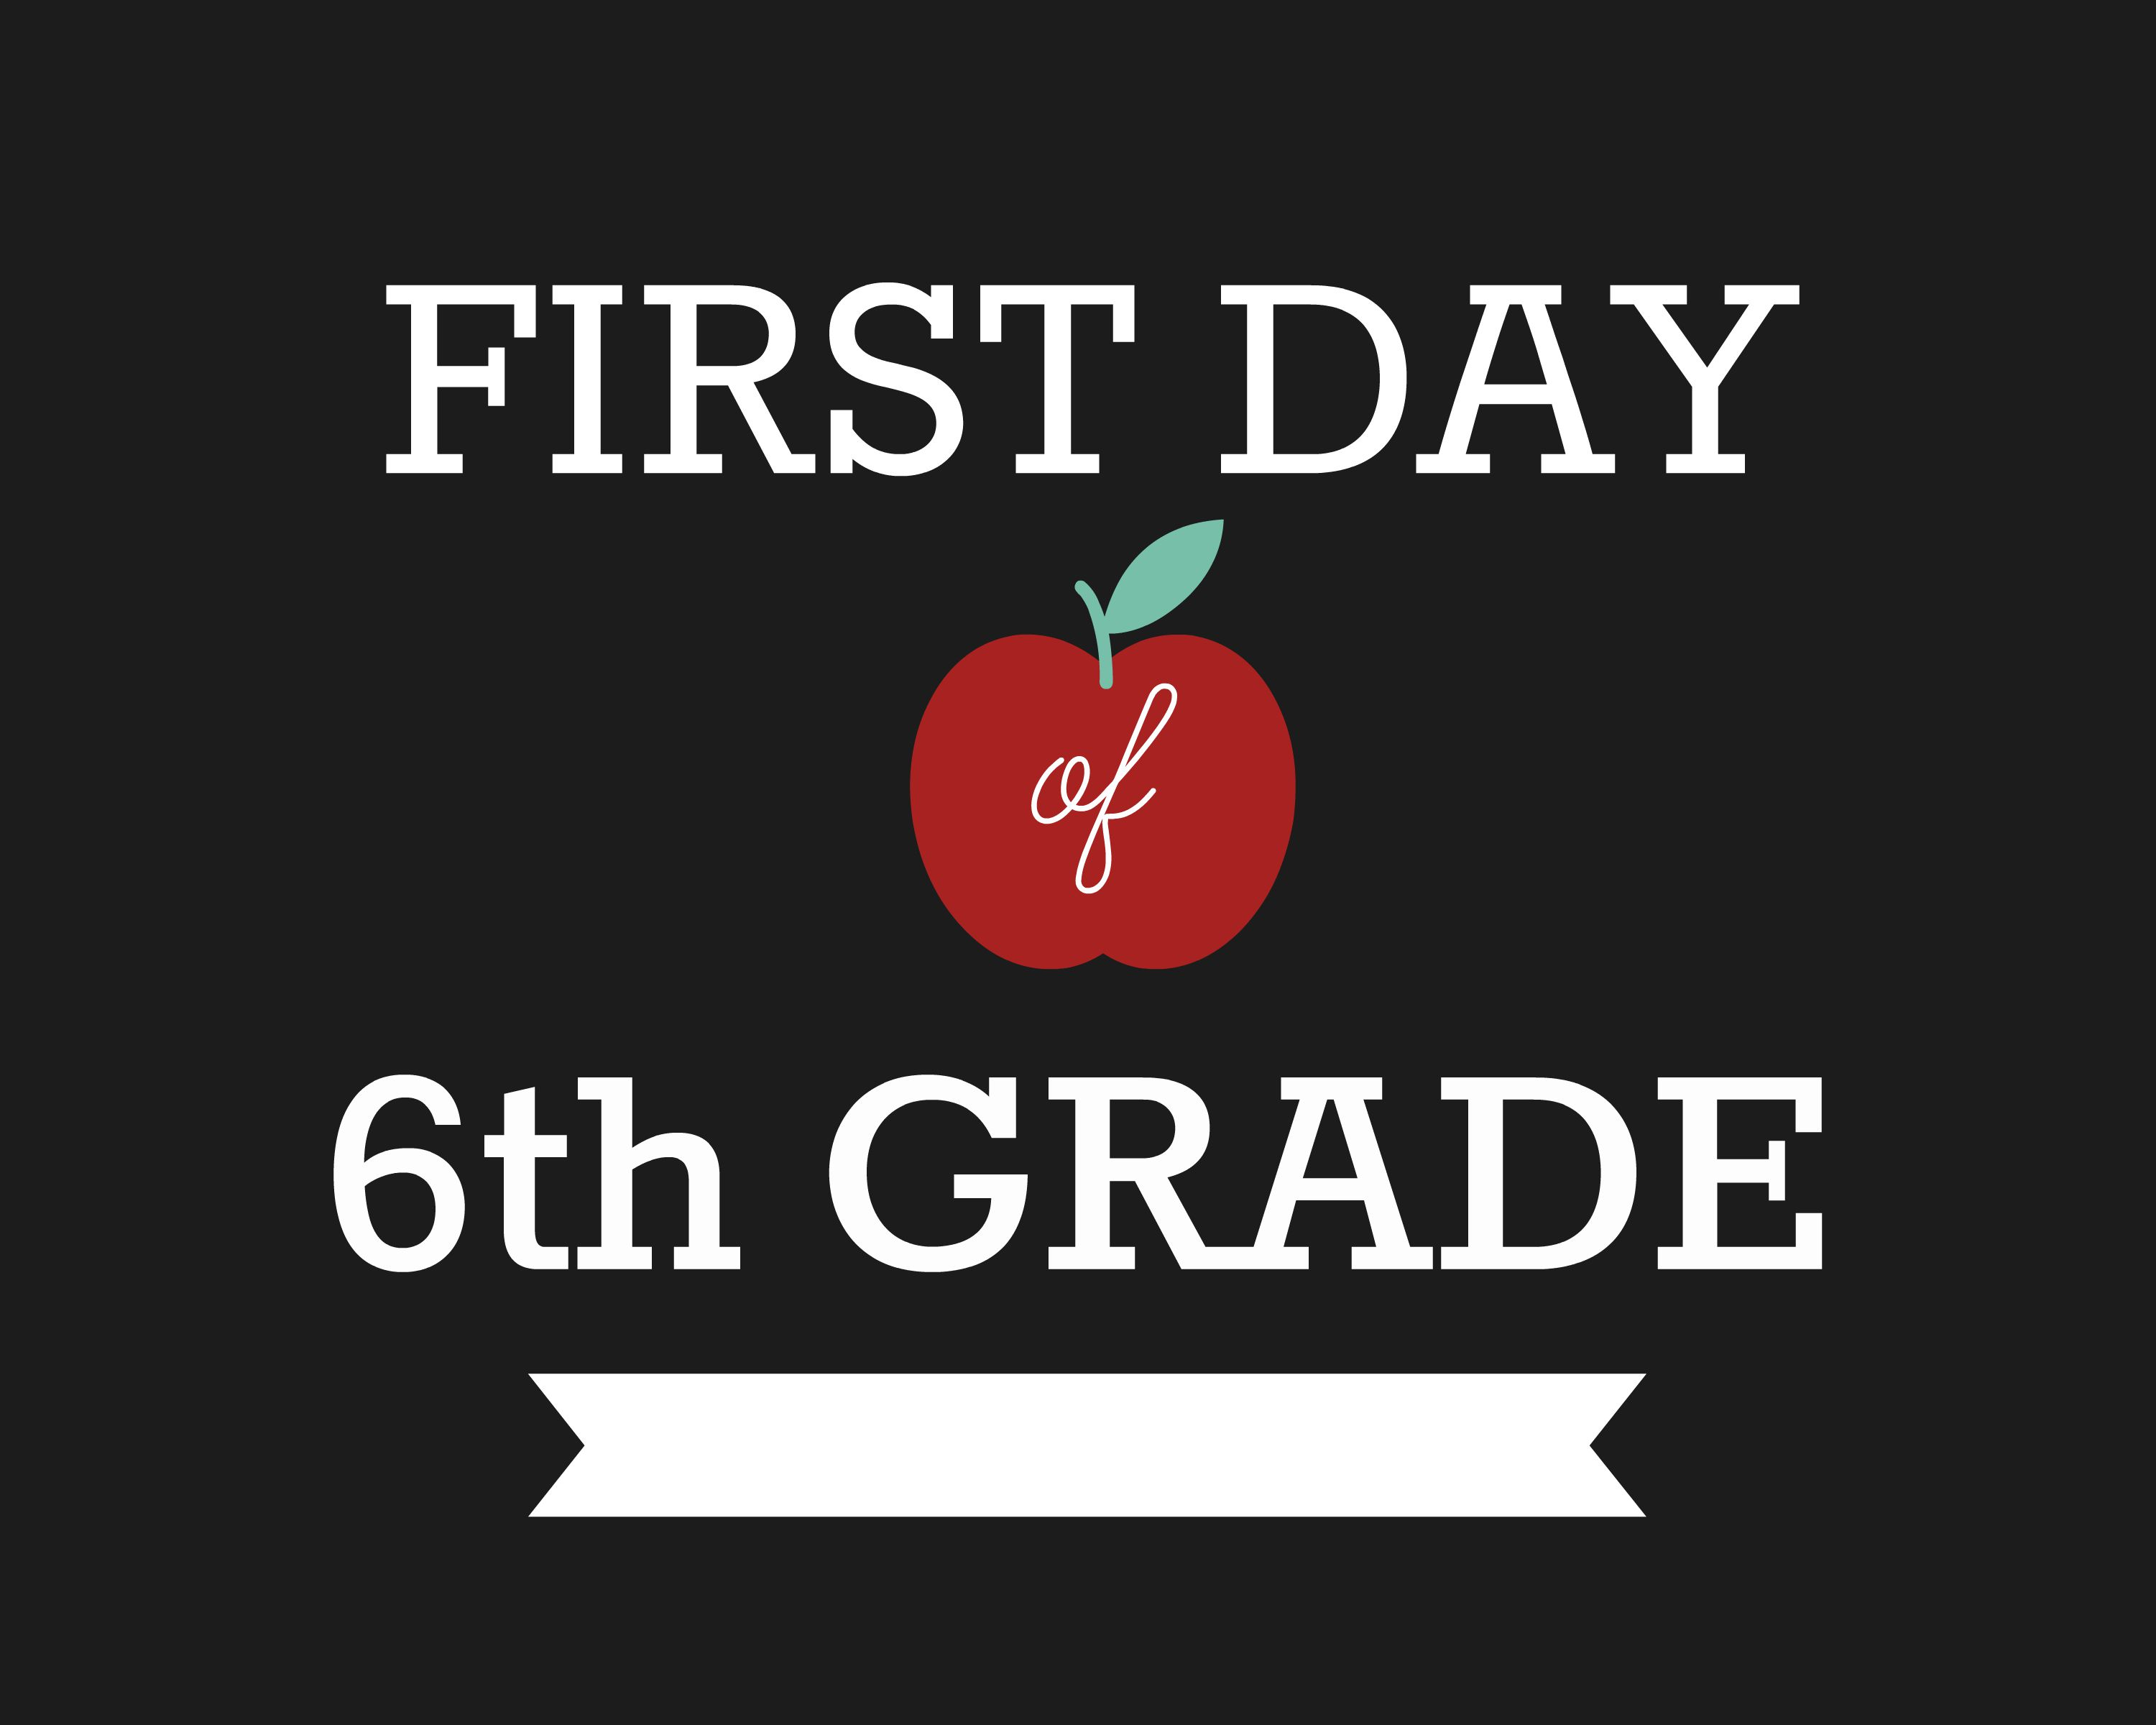 6th grade christmas party ideas - First Day Of School Signs Sixth Grade